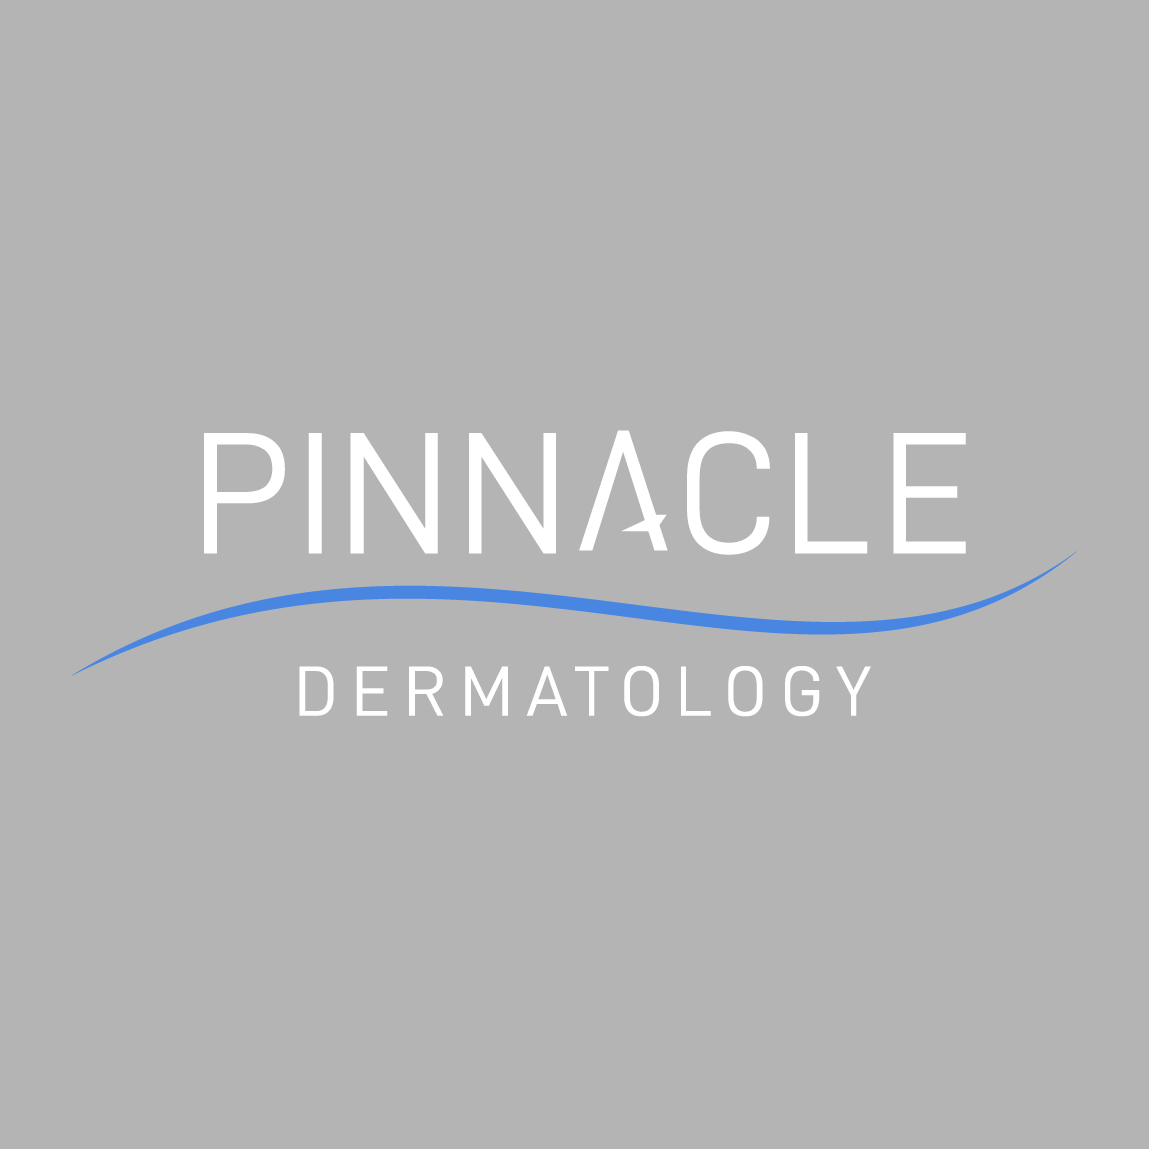 Pinnacle Dermatology- Chicago Archer Ave.